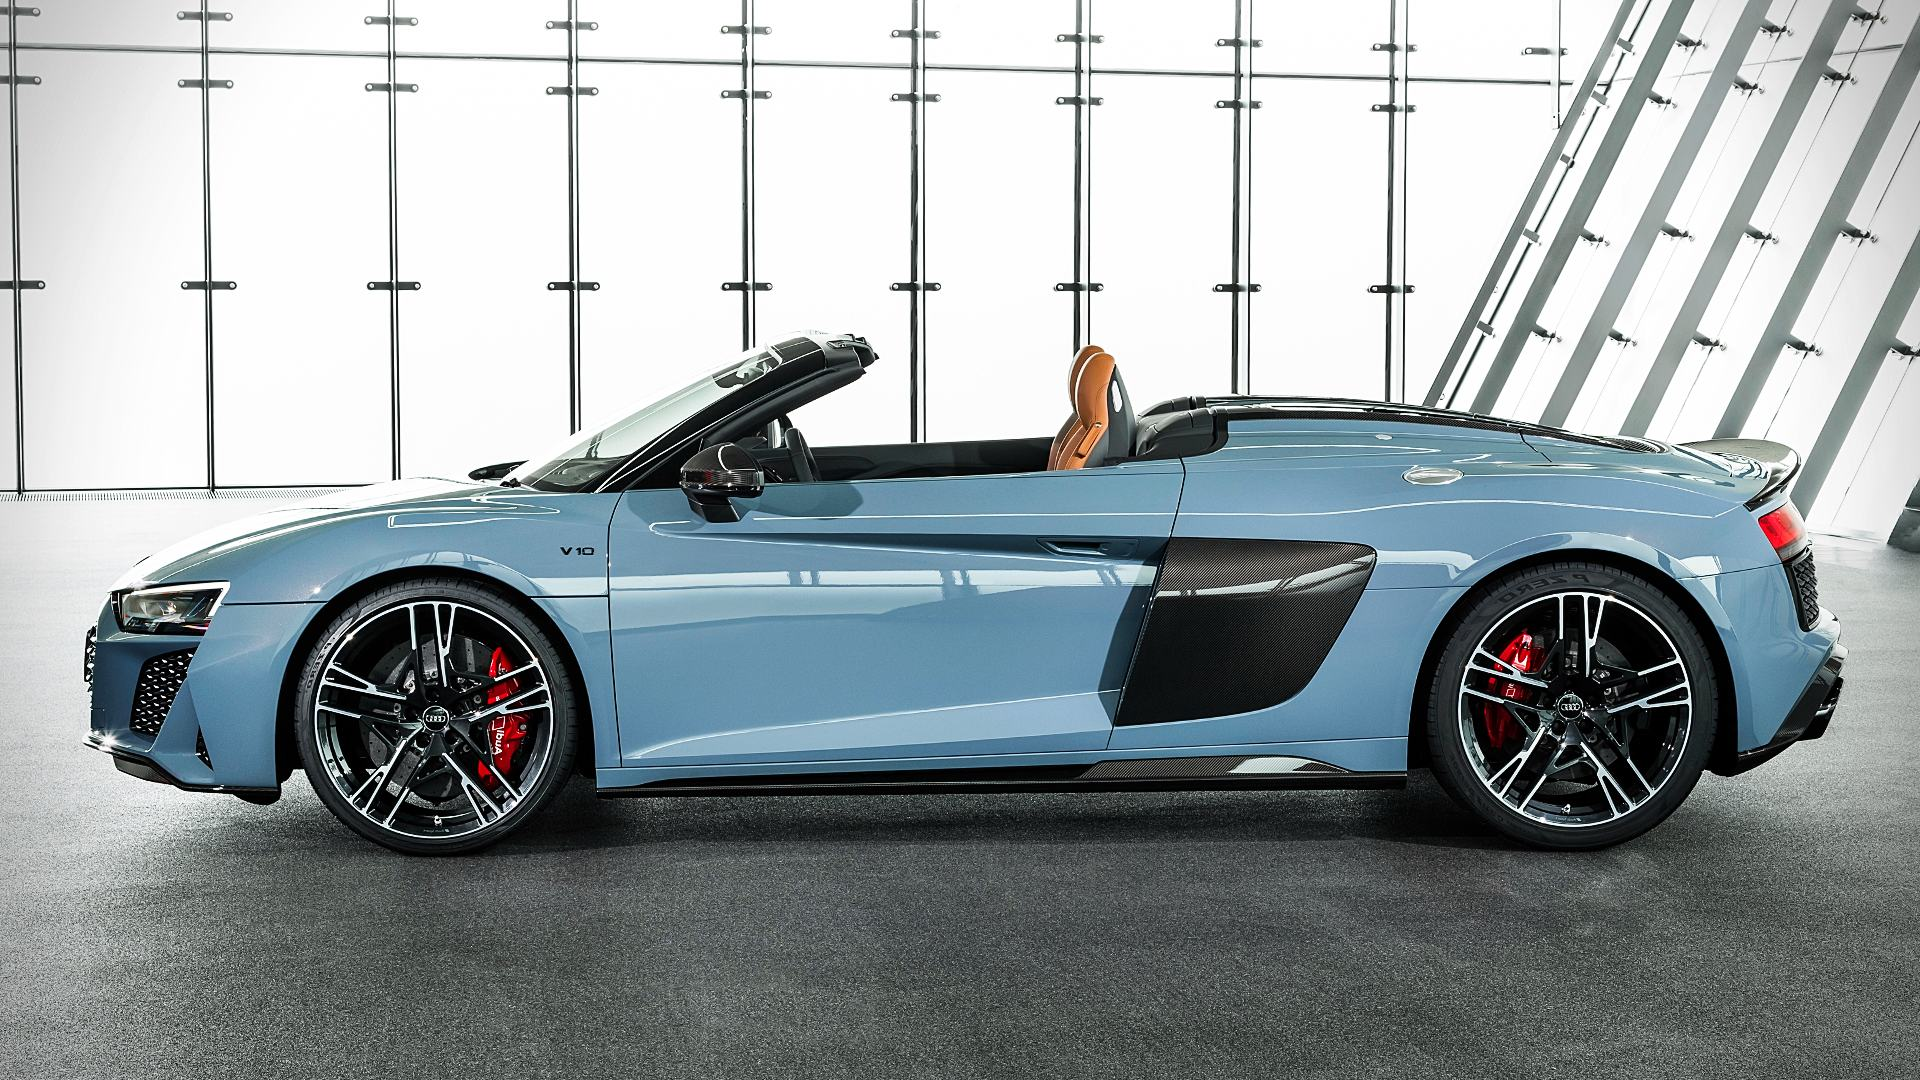 2020 Audi R8 V10 Performance Spyder Images